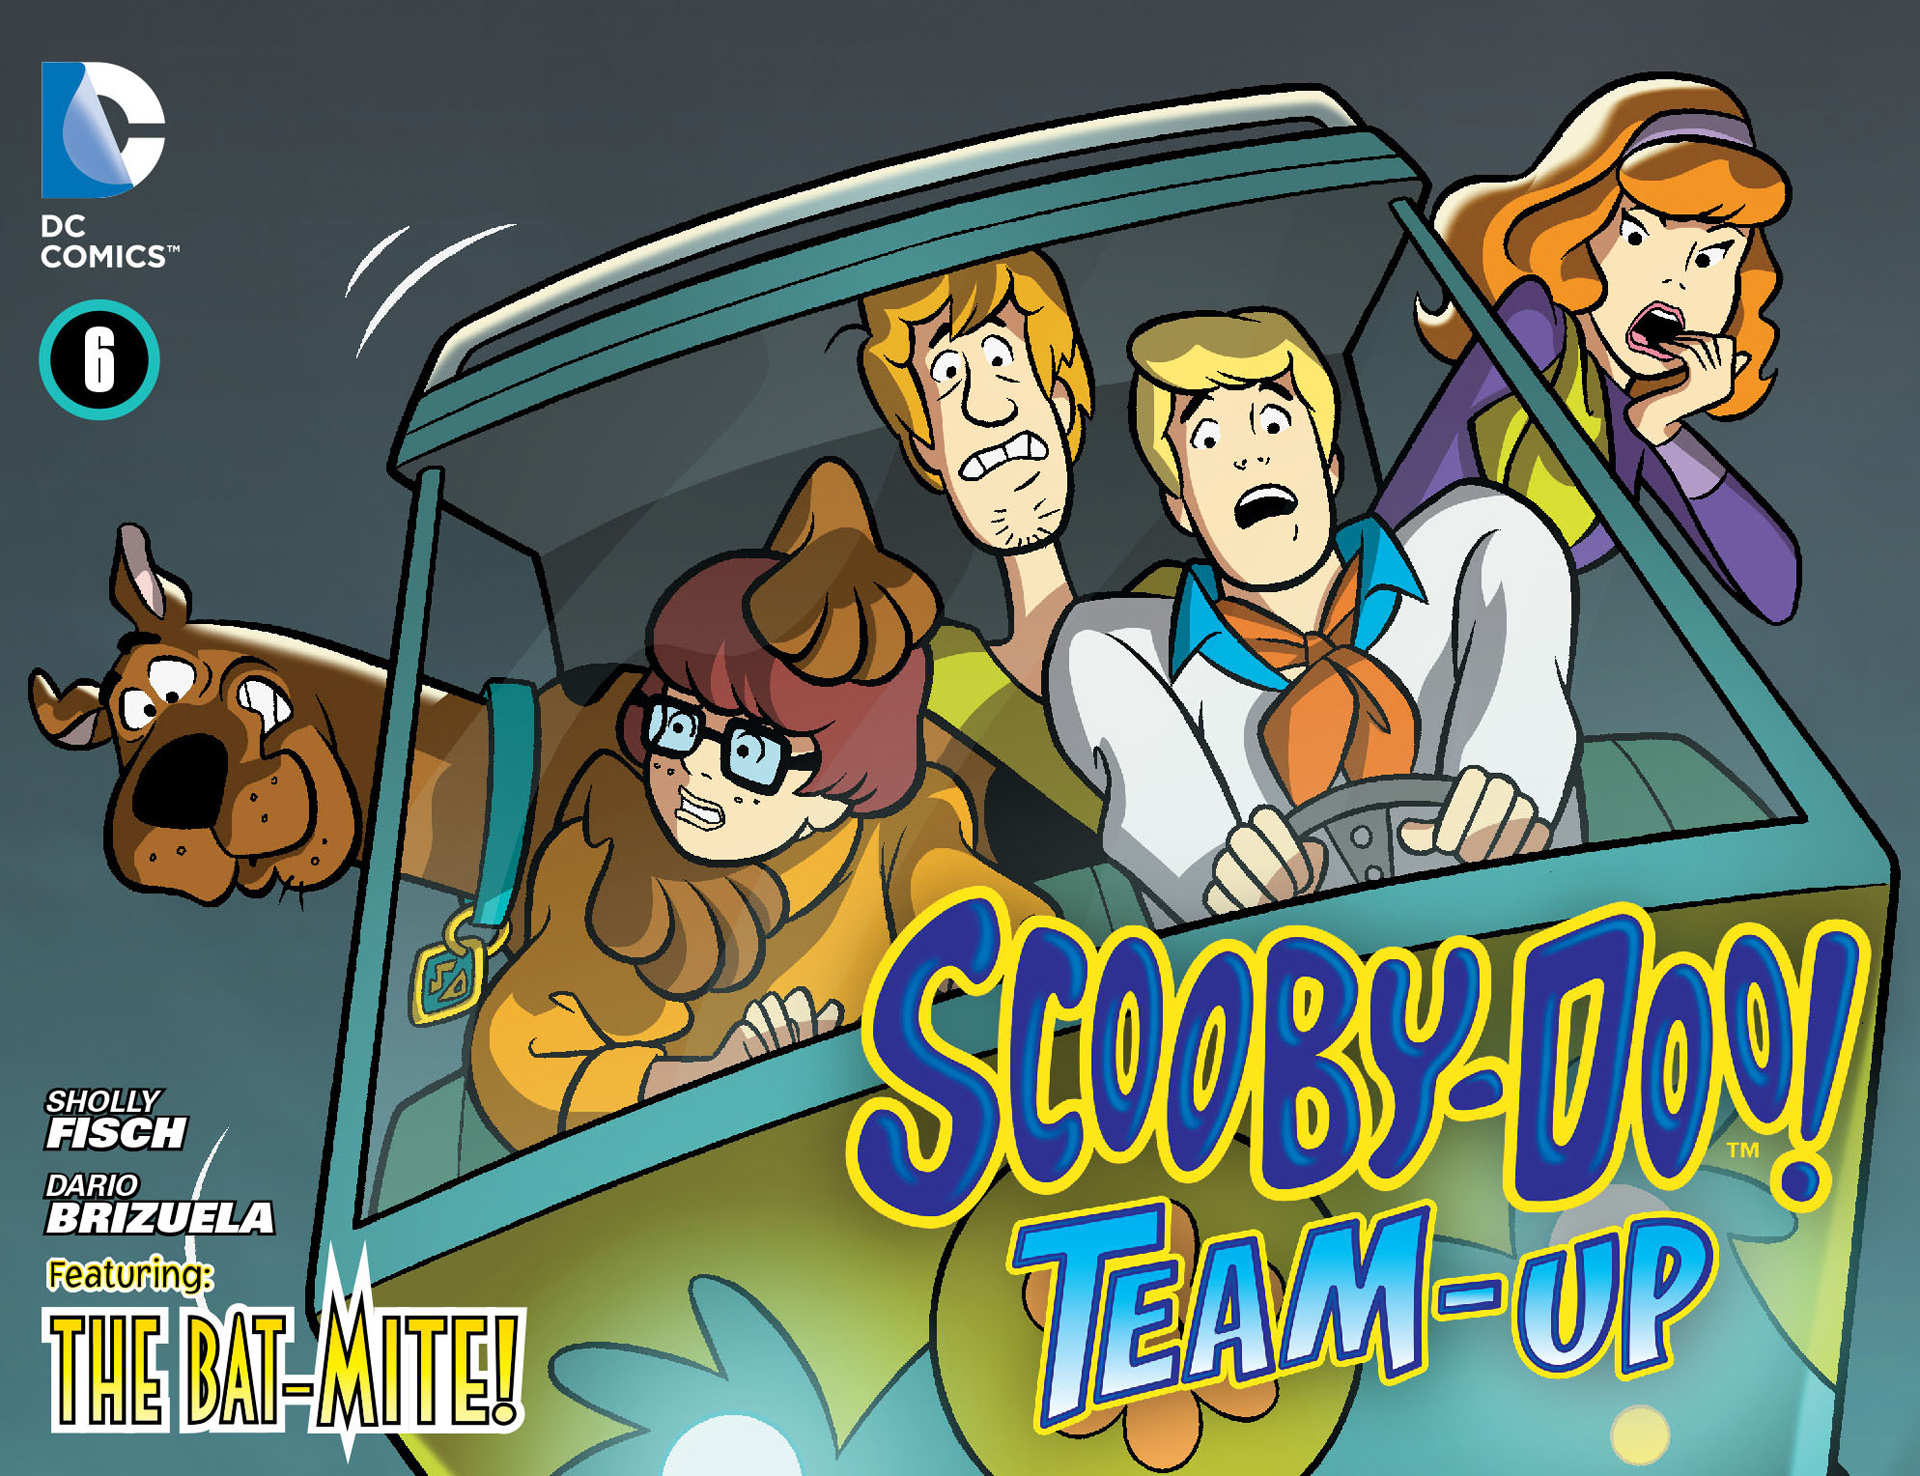 Read online Scooby-Doo! Team-Up comic -  Issue #6 - 1